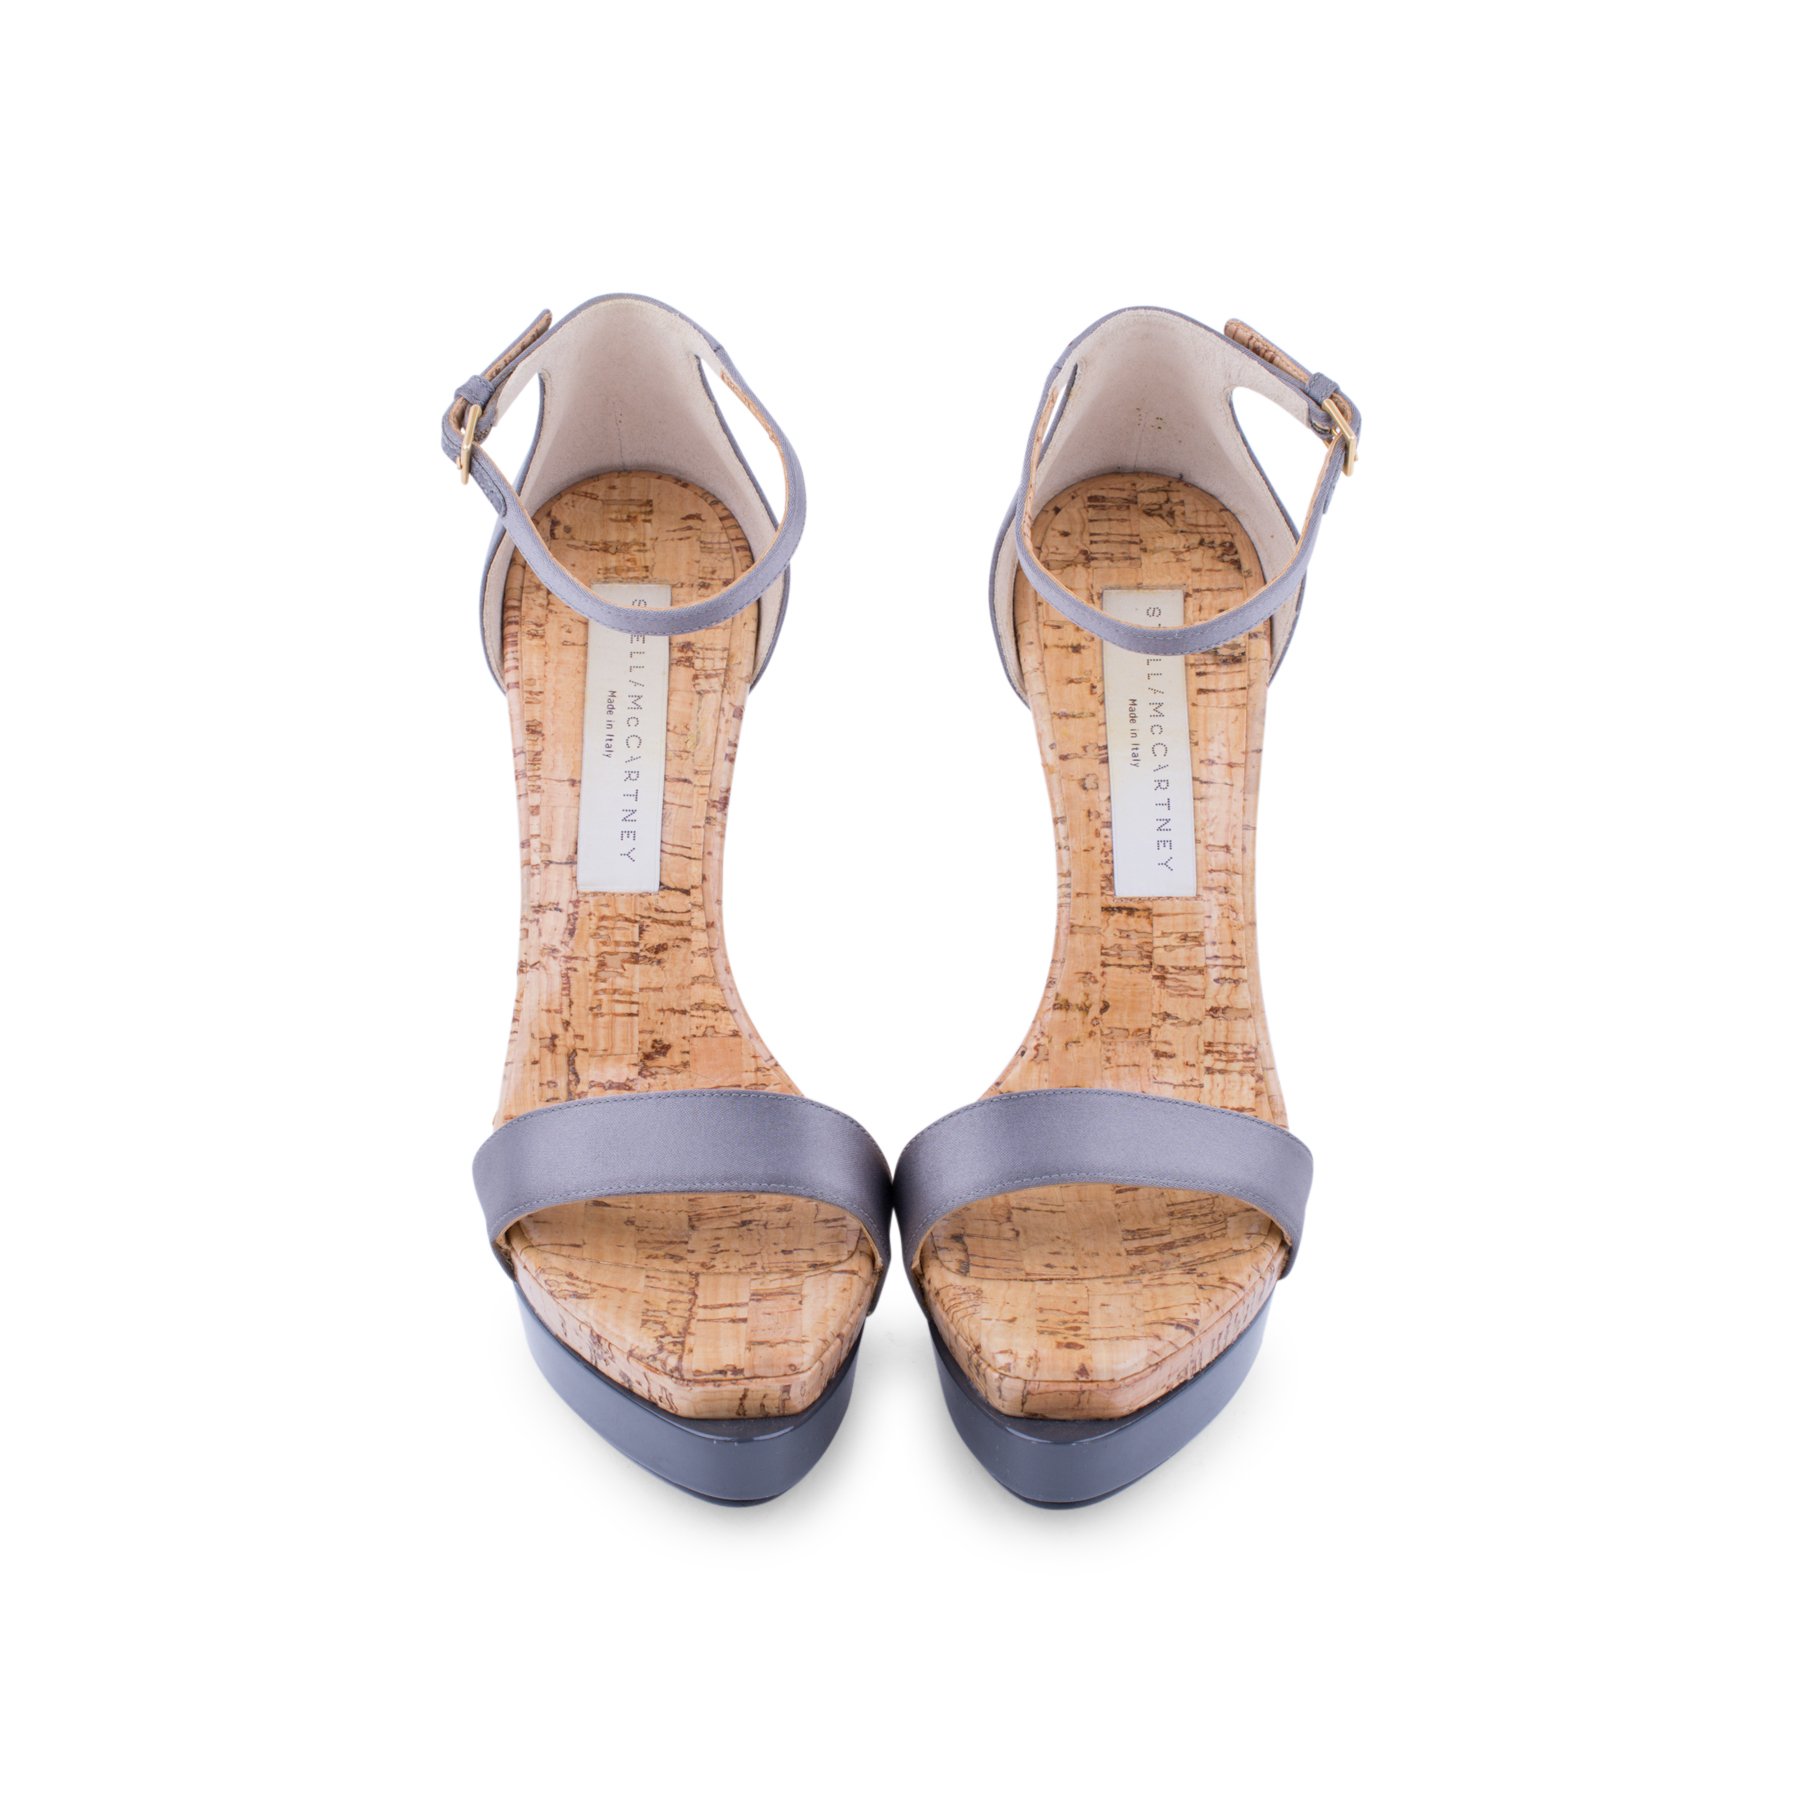 23f4cfd80a3 Authentic Second Hand Stella McCartney Cork Platform Sandals  (PSS-080-00220)